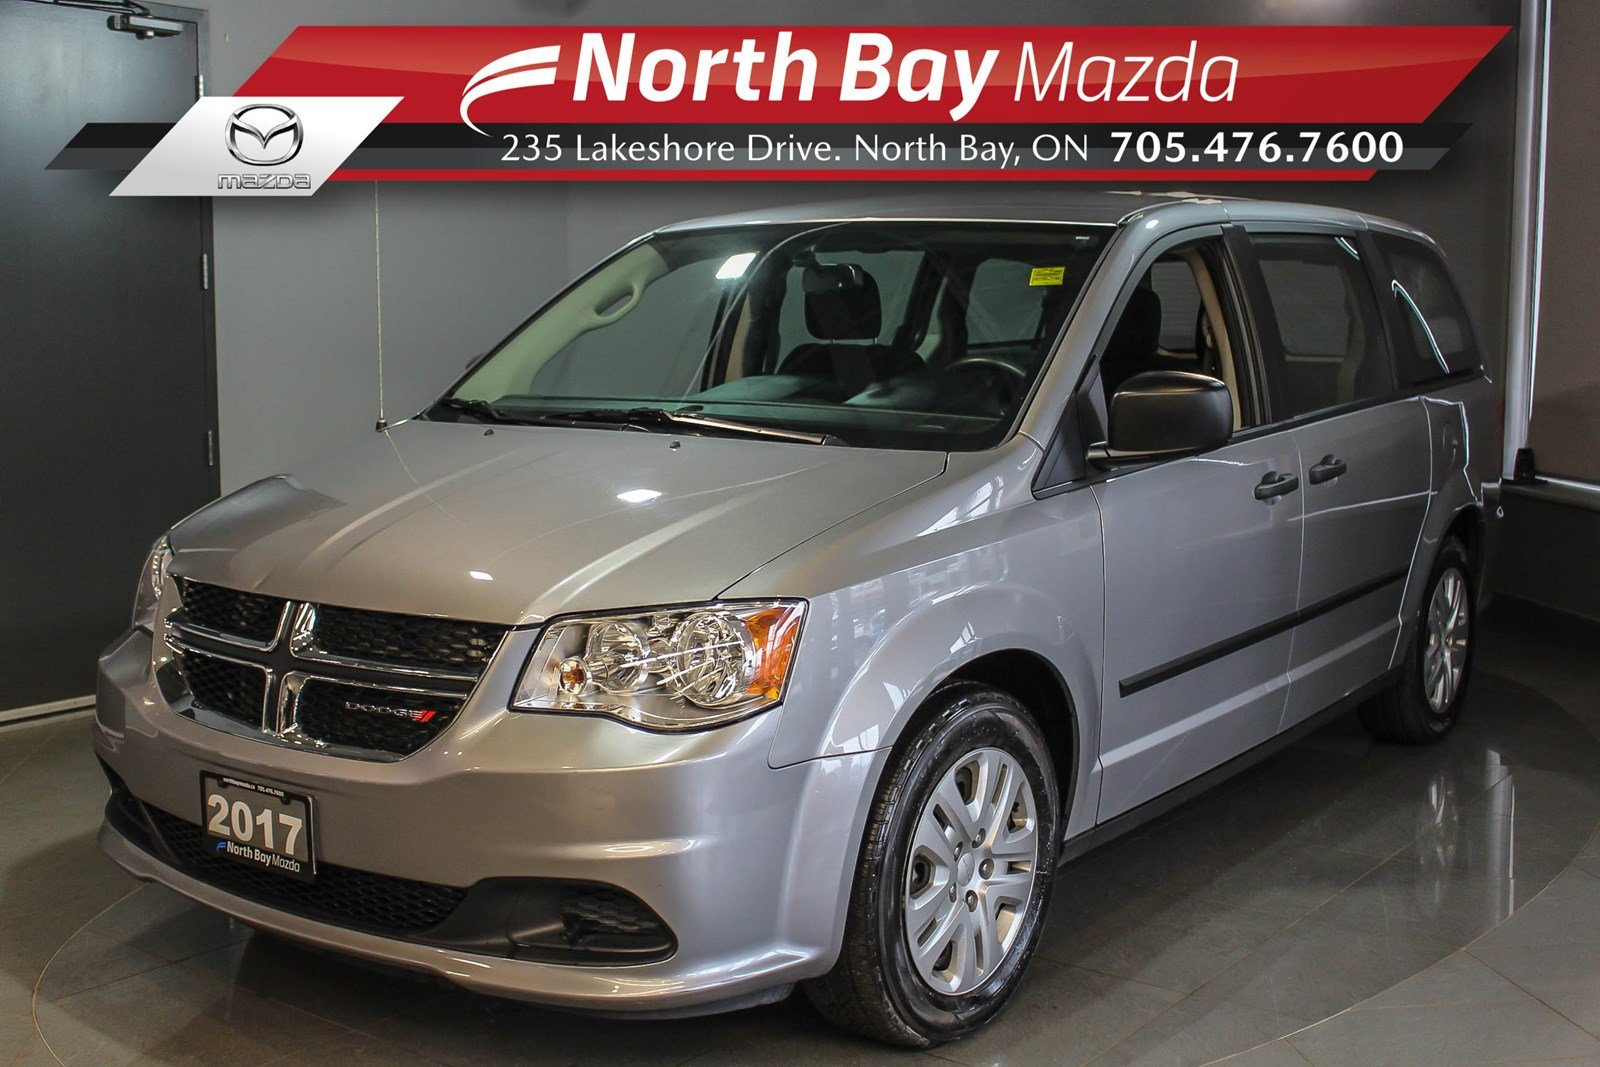 Pre-Owned 2017 Dodge Grand Caravan with Sto'N Go, Eco Mode, Cruise